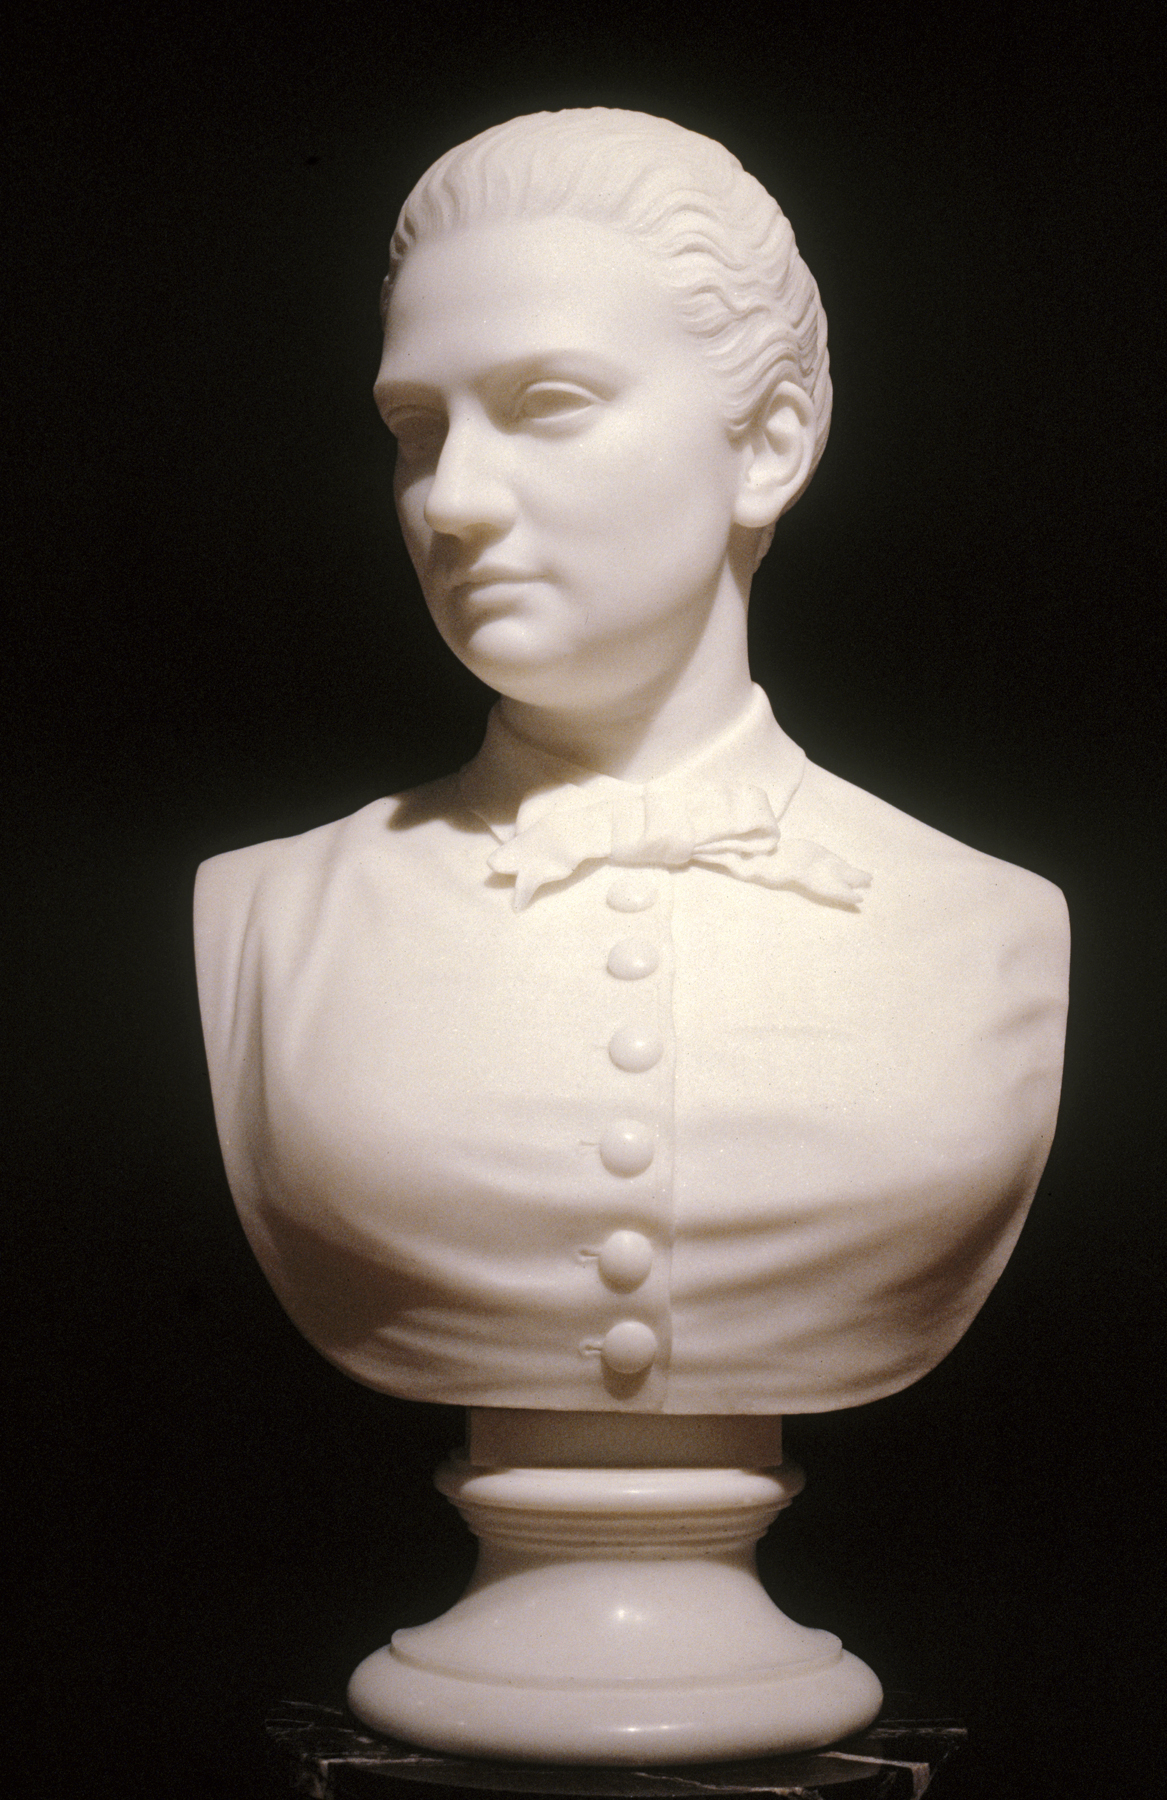 https://upload.wikimedia.org/wikipedia/commons/c/c3/William_Henry_Rinehart_-_Bust_of_Jennie_Walters_-_Walters_2820.jpg